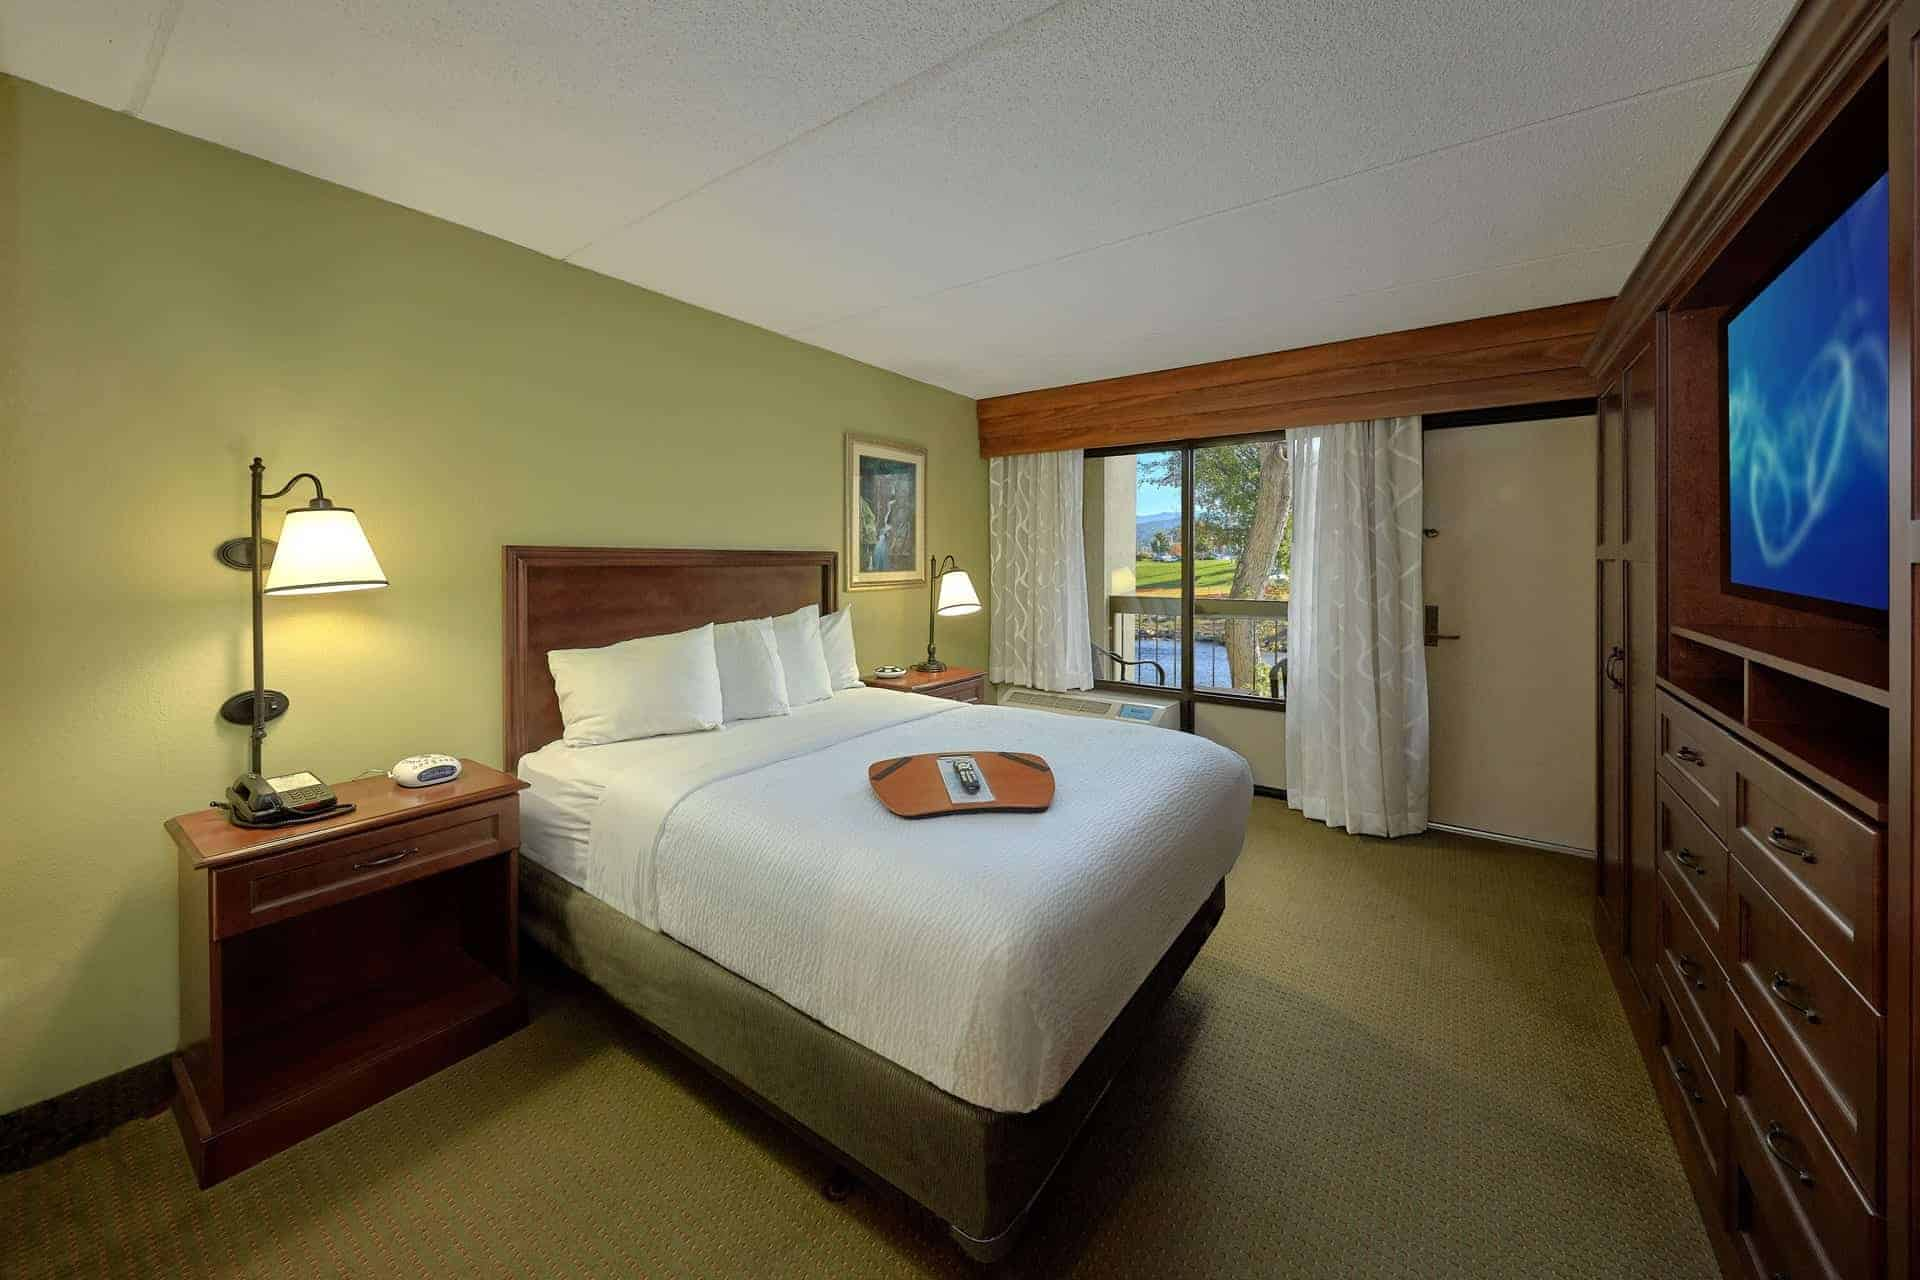 Riverside Queen Handicap Friendly Room at The Inn On The River